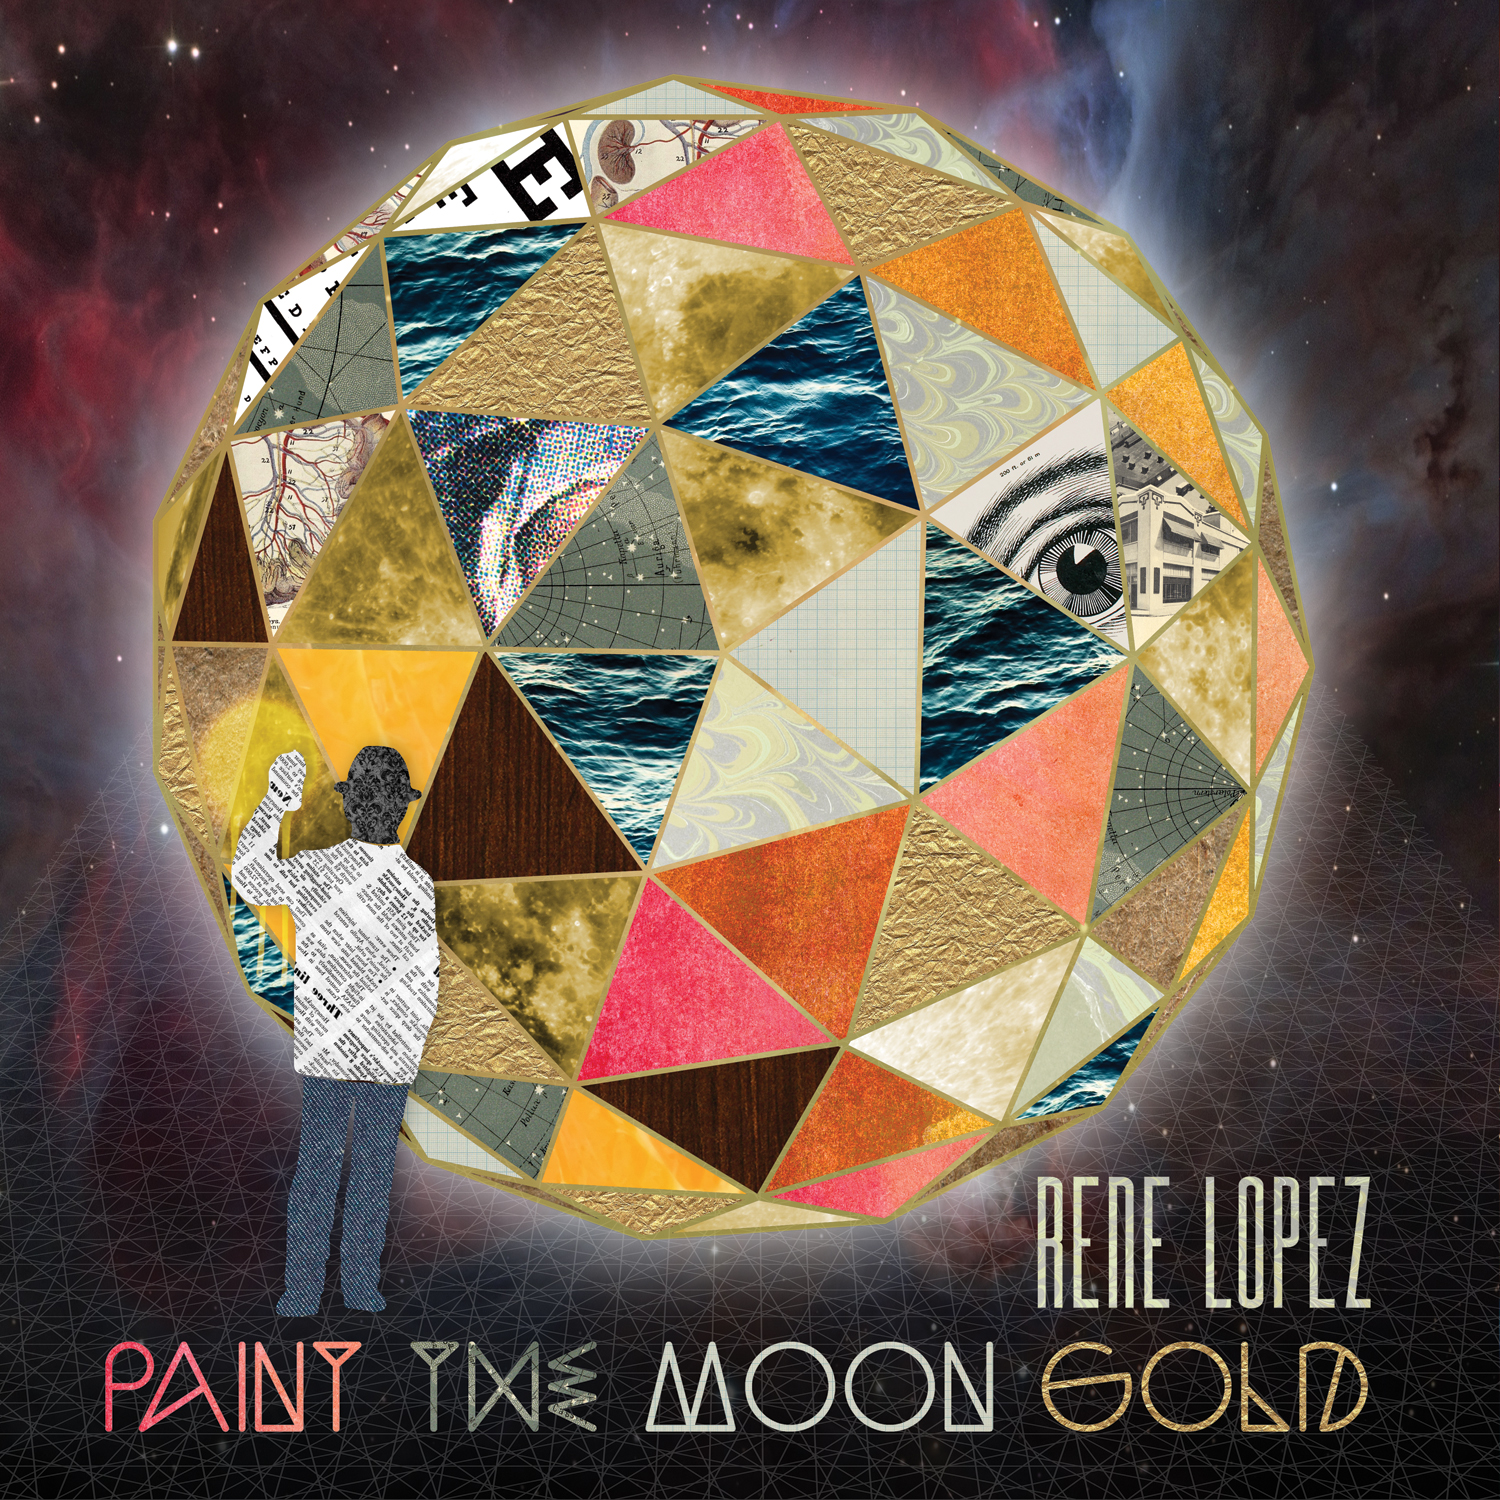 00-Rene-Lopez-Paint-The-Moon-Gold.jpg